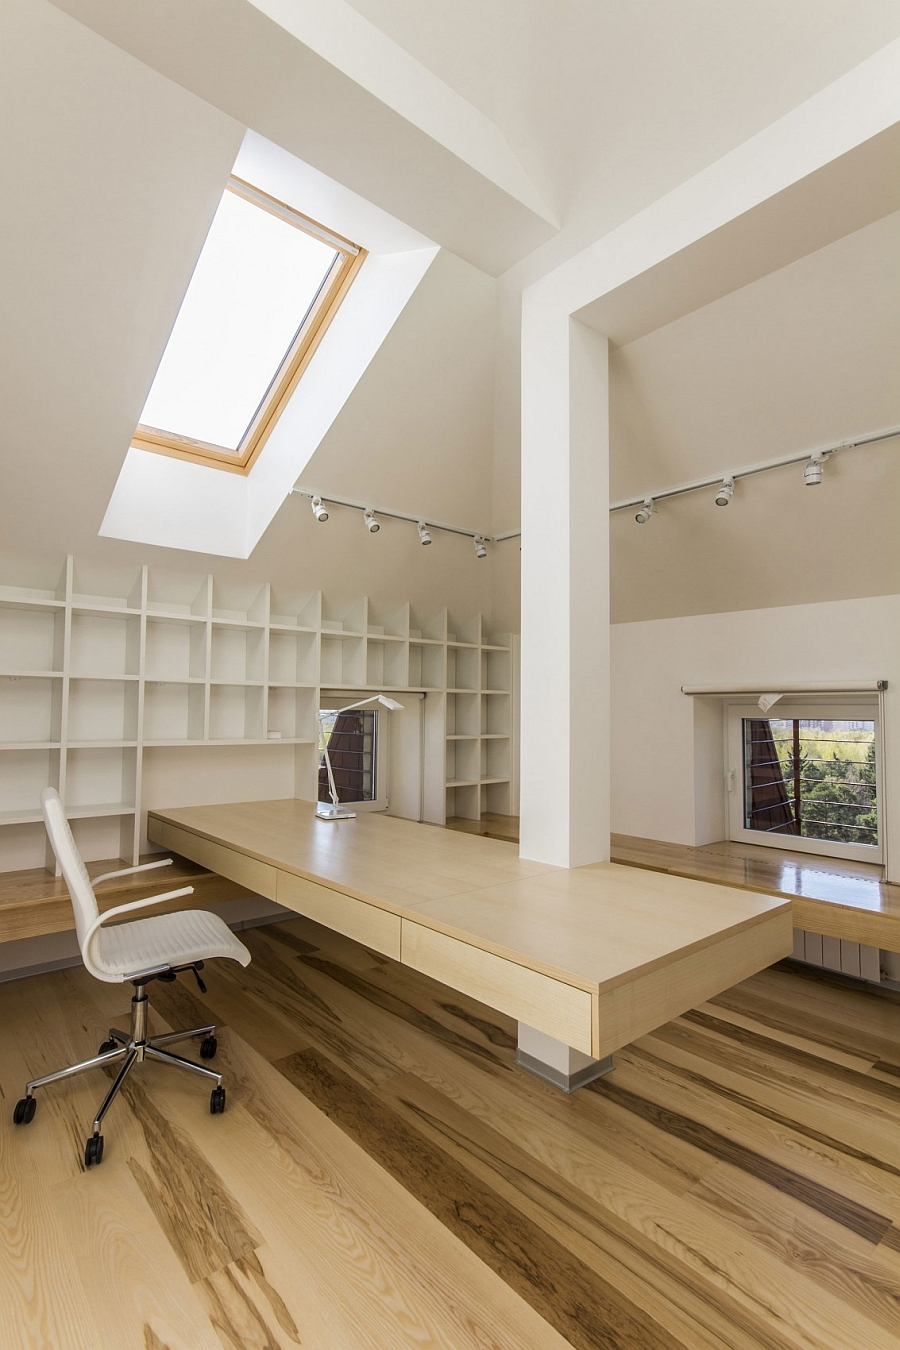 Space-conscious home office with ample storage space